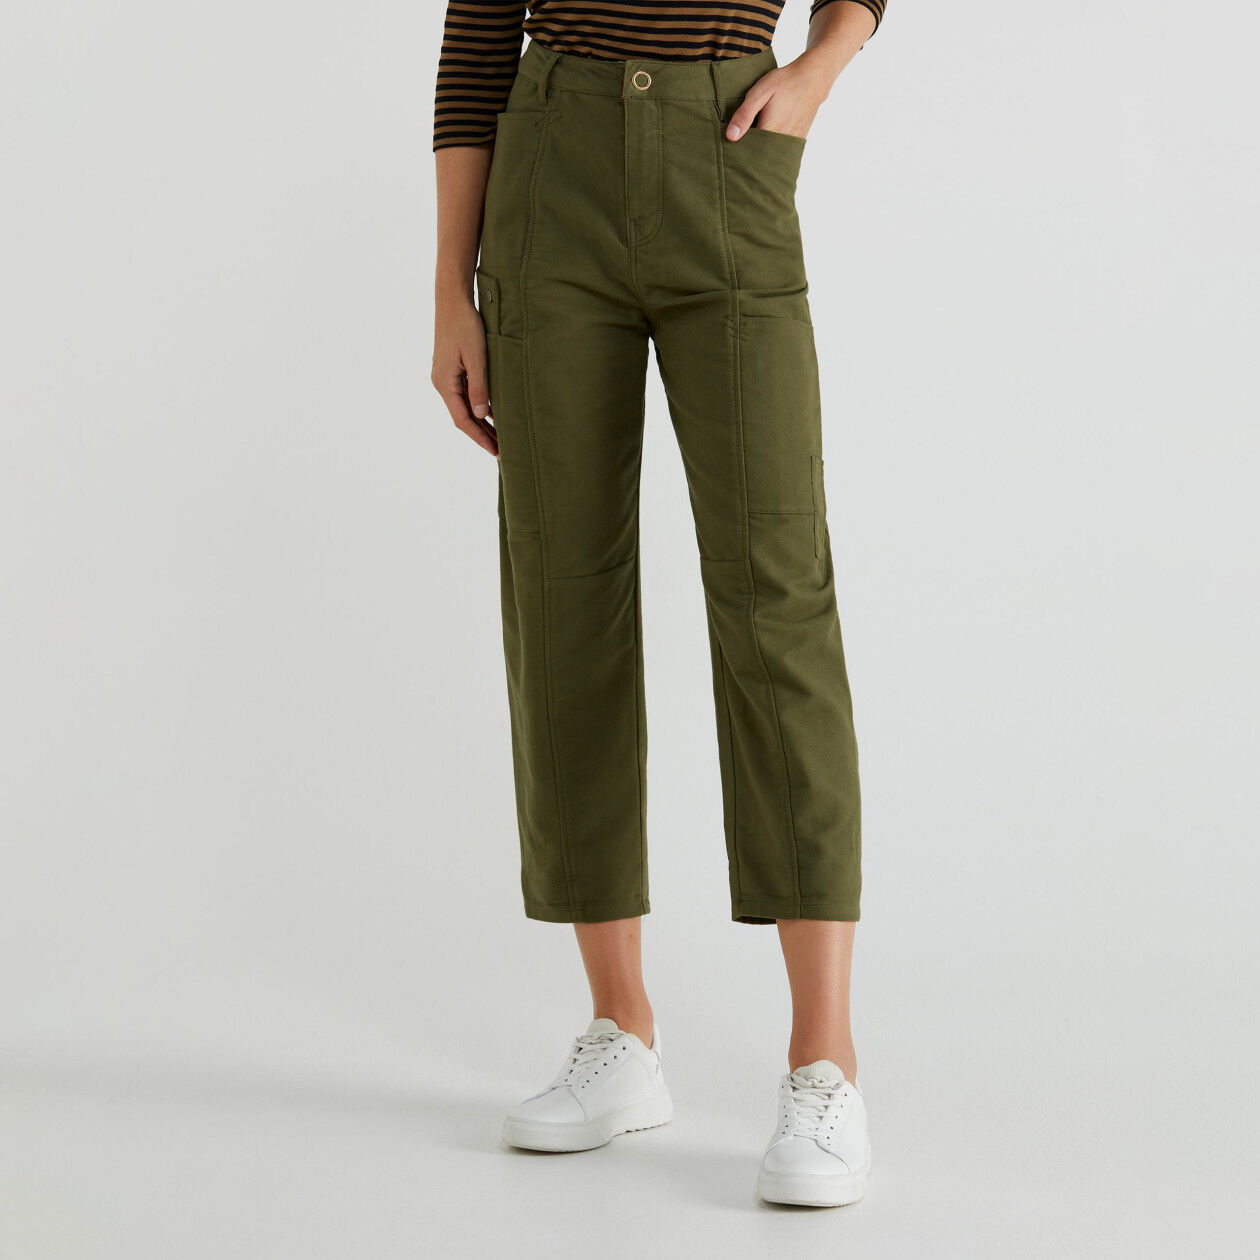 Moleskin trousers